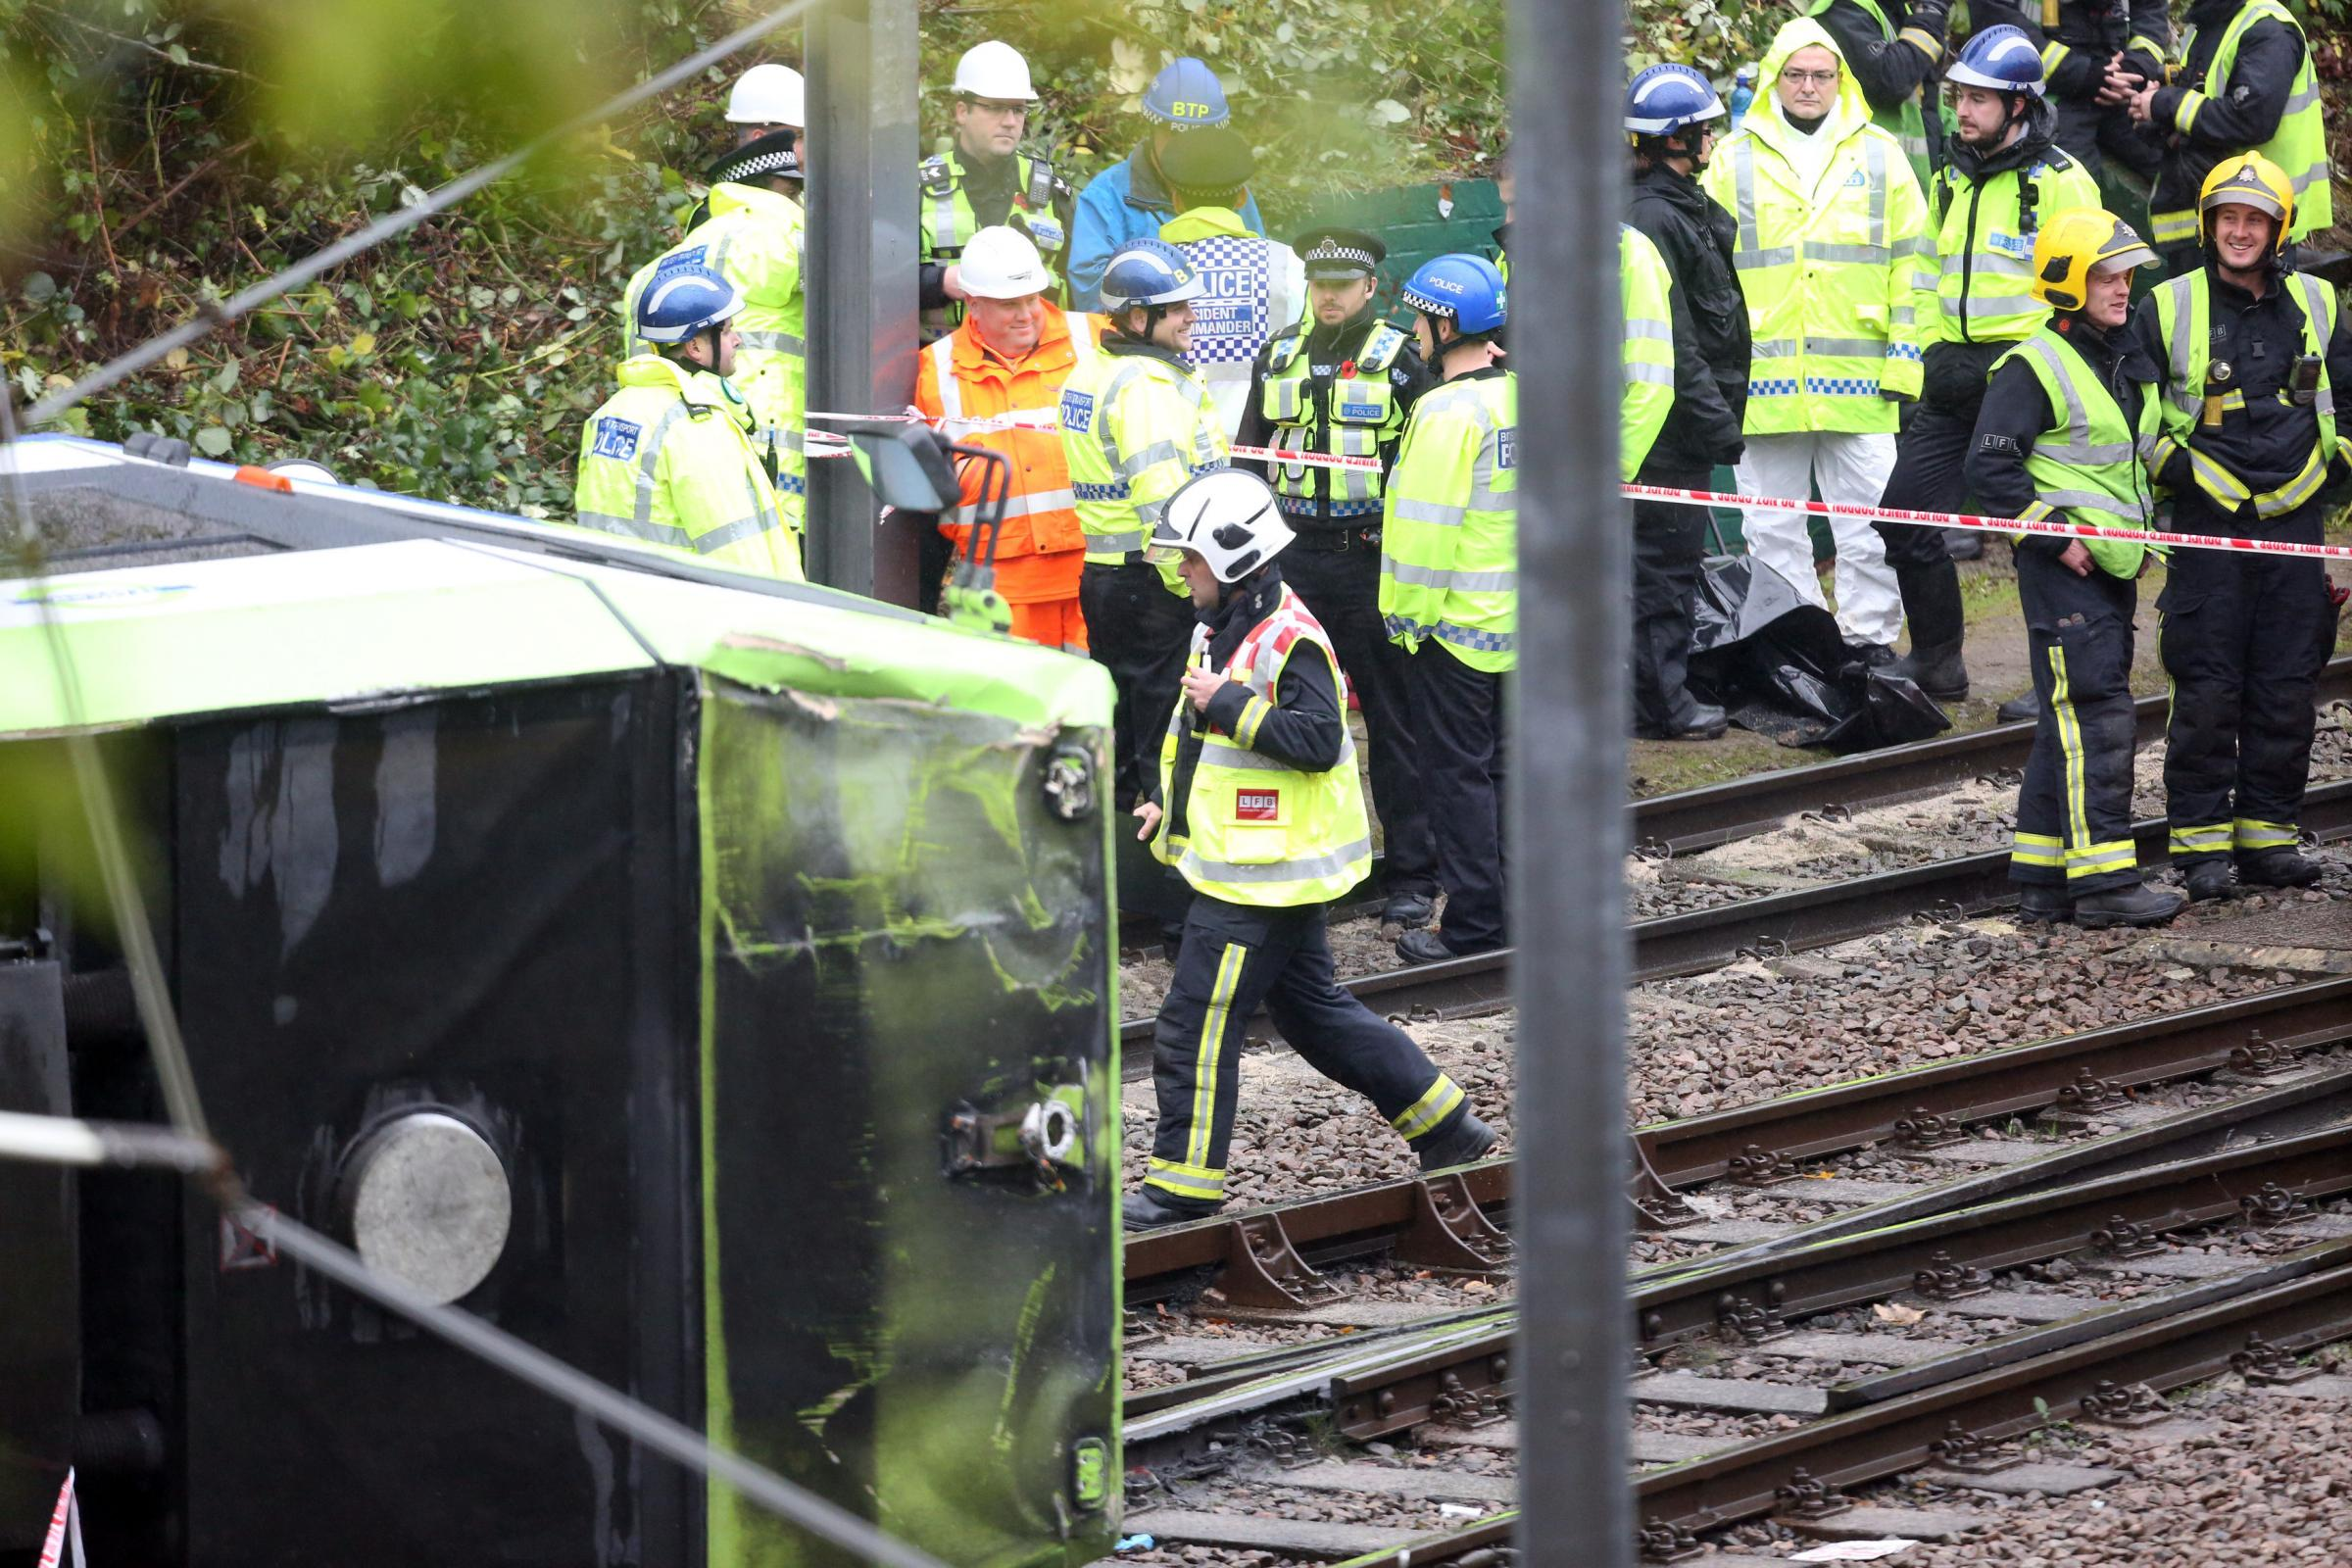 Croydon tram crash driver probably fell asleep before derailing, investigation reveals. Photo: PA Wire